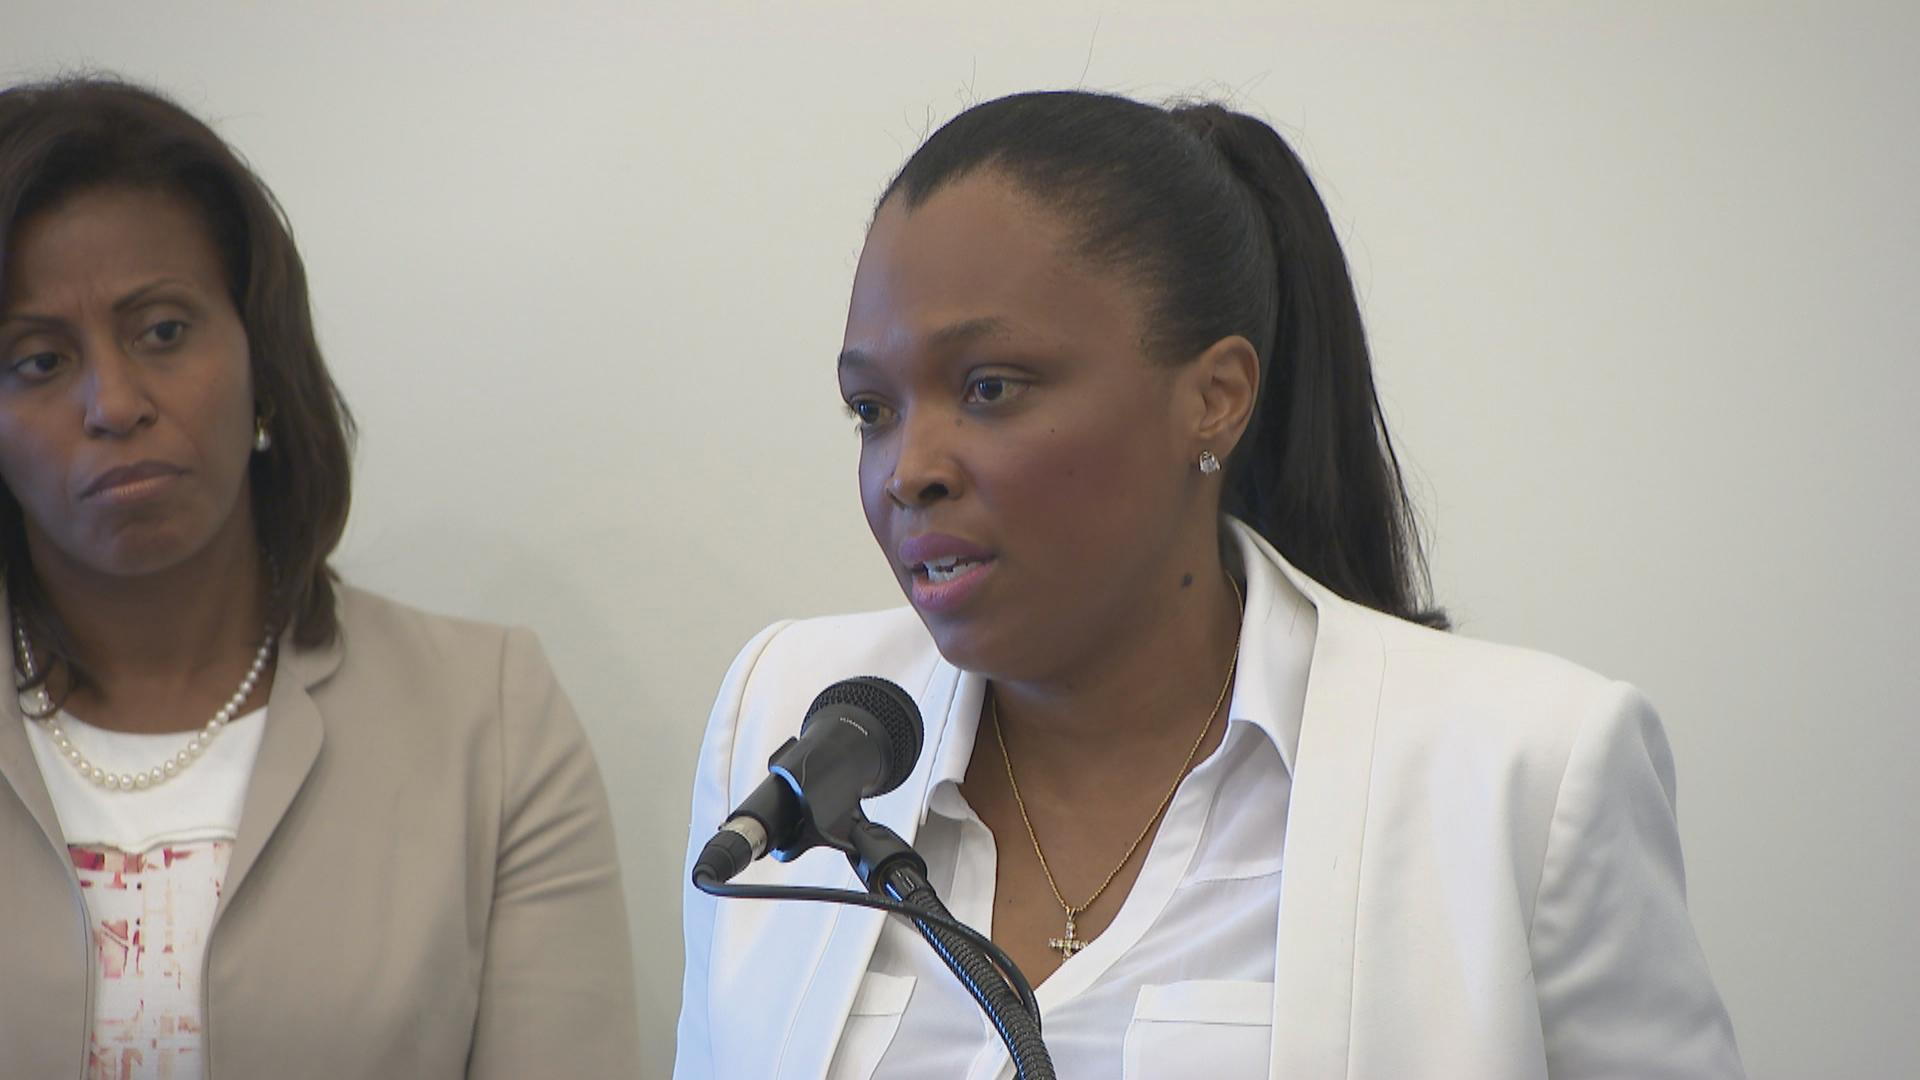 CPS CEO Janice Jackson speaks during a press conference on Monday, June 18, 2018. (Chicago Tonight)